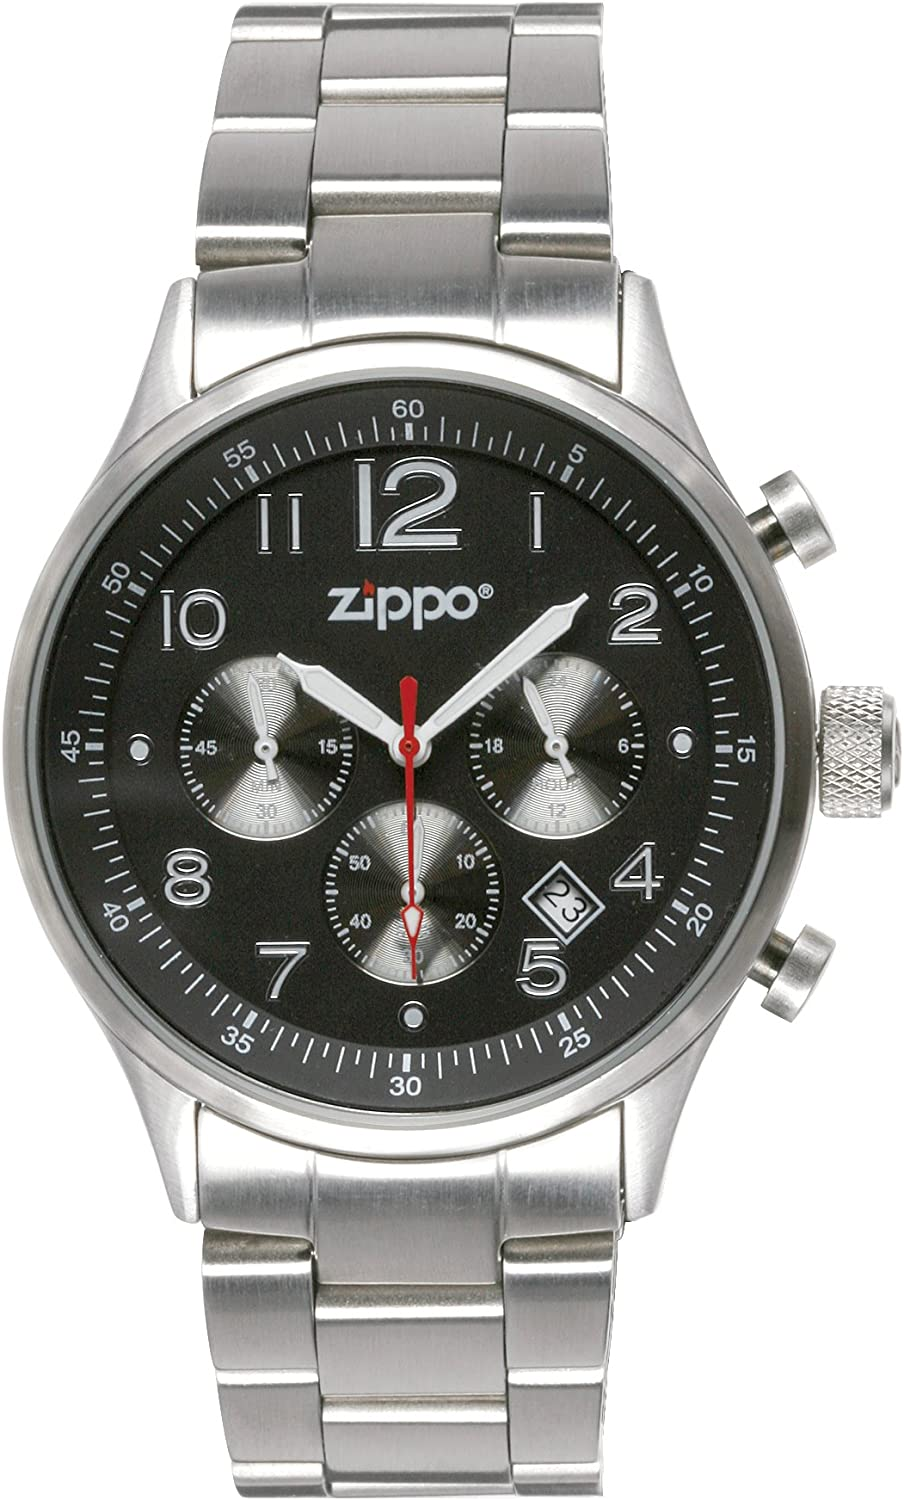 Zippo Sports Watch with Chronograph Black Dial and Solid Stainless Steel Band, Black